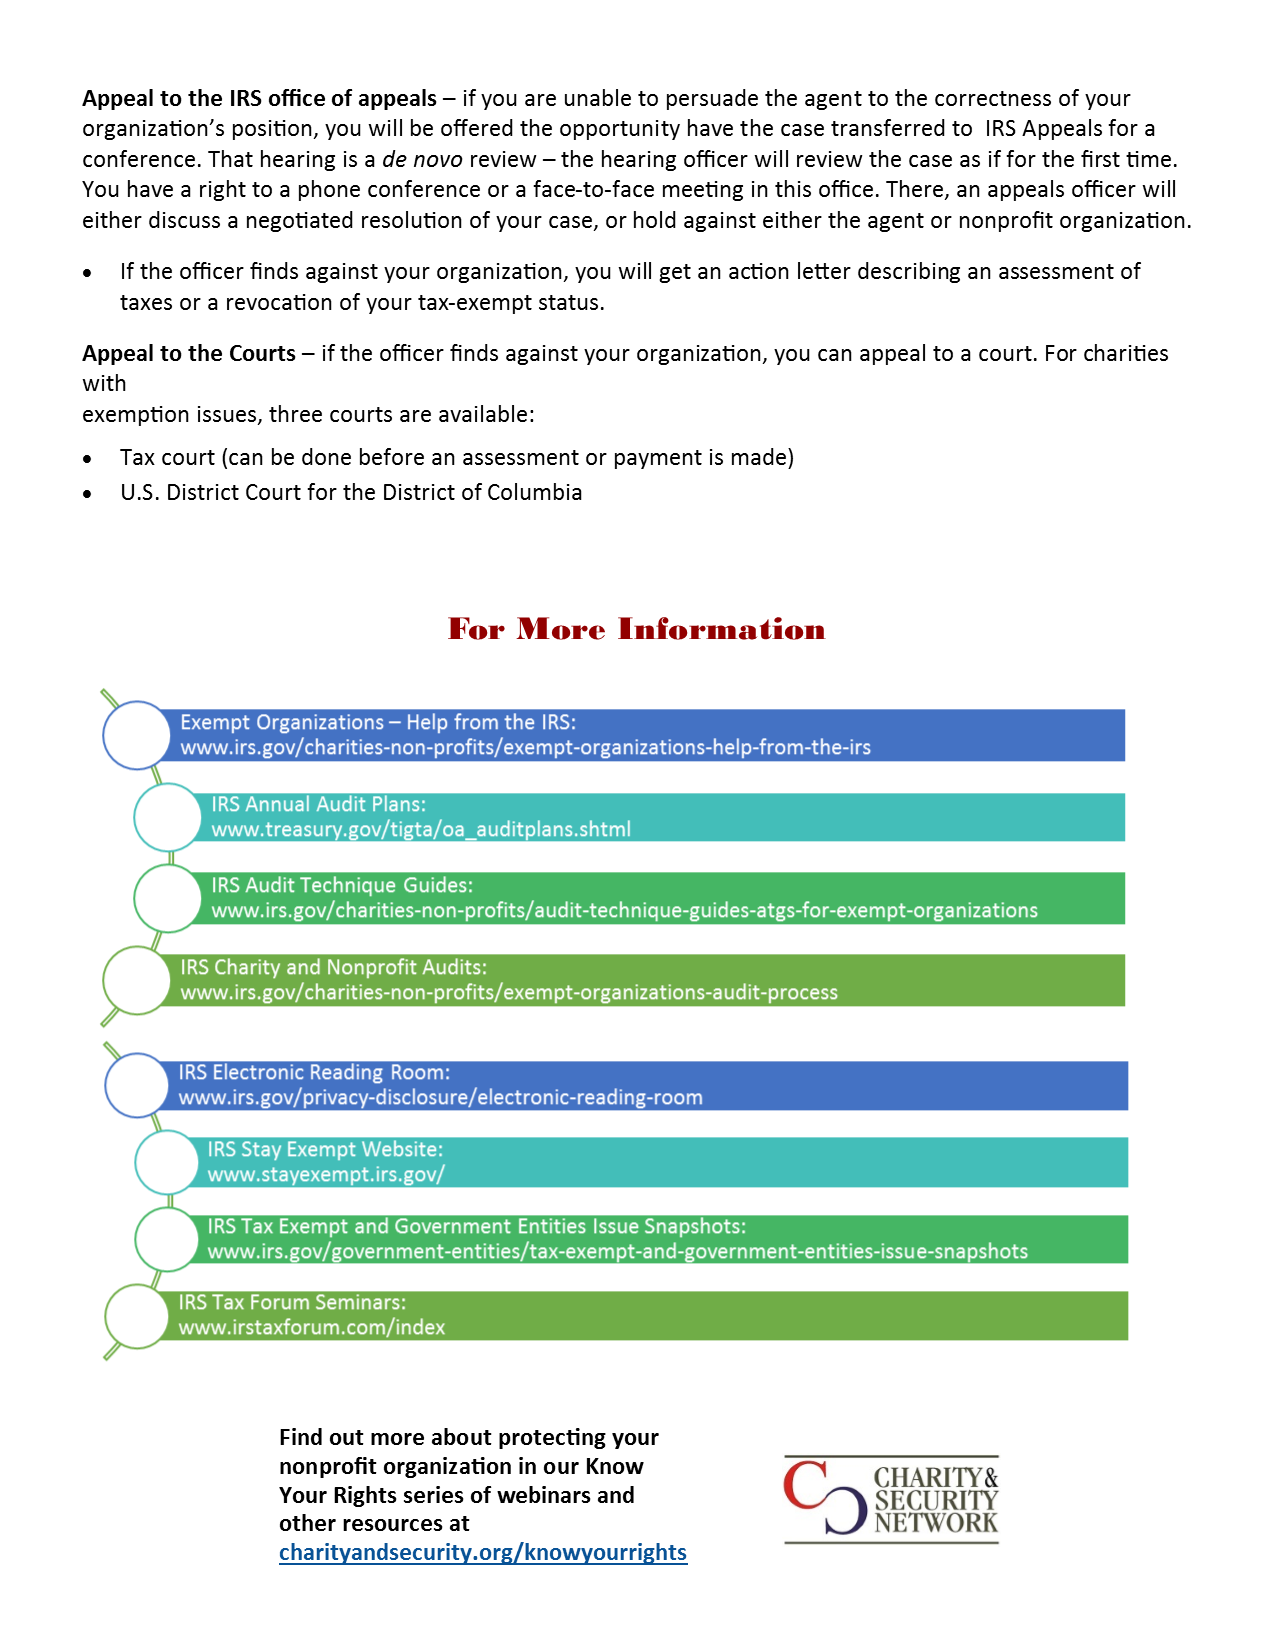 IRS audit guide layout